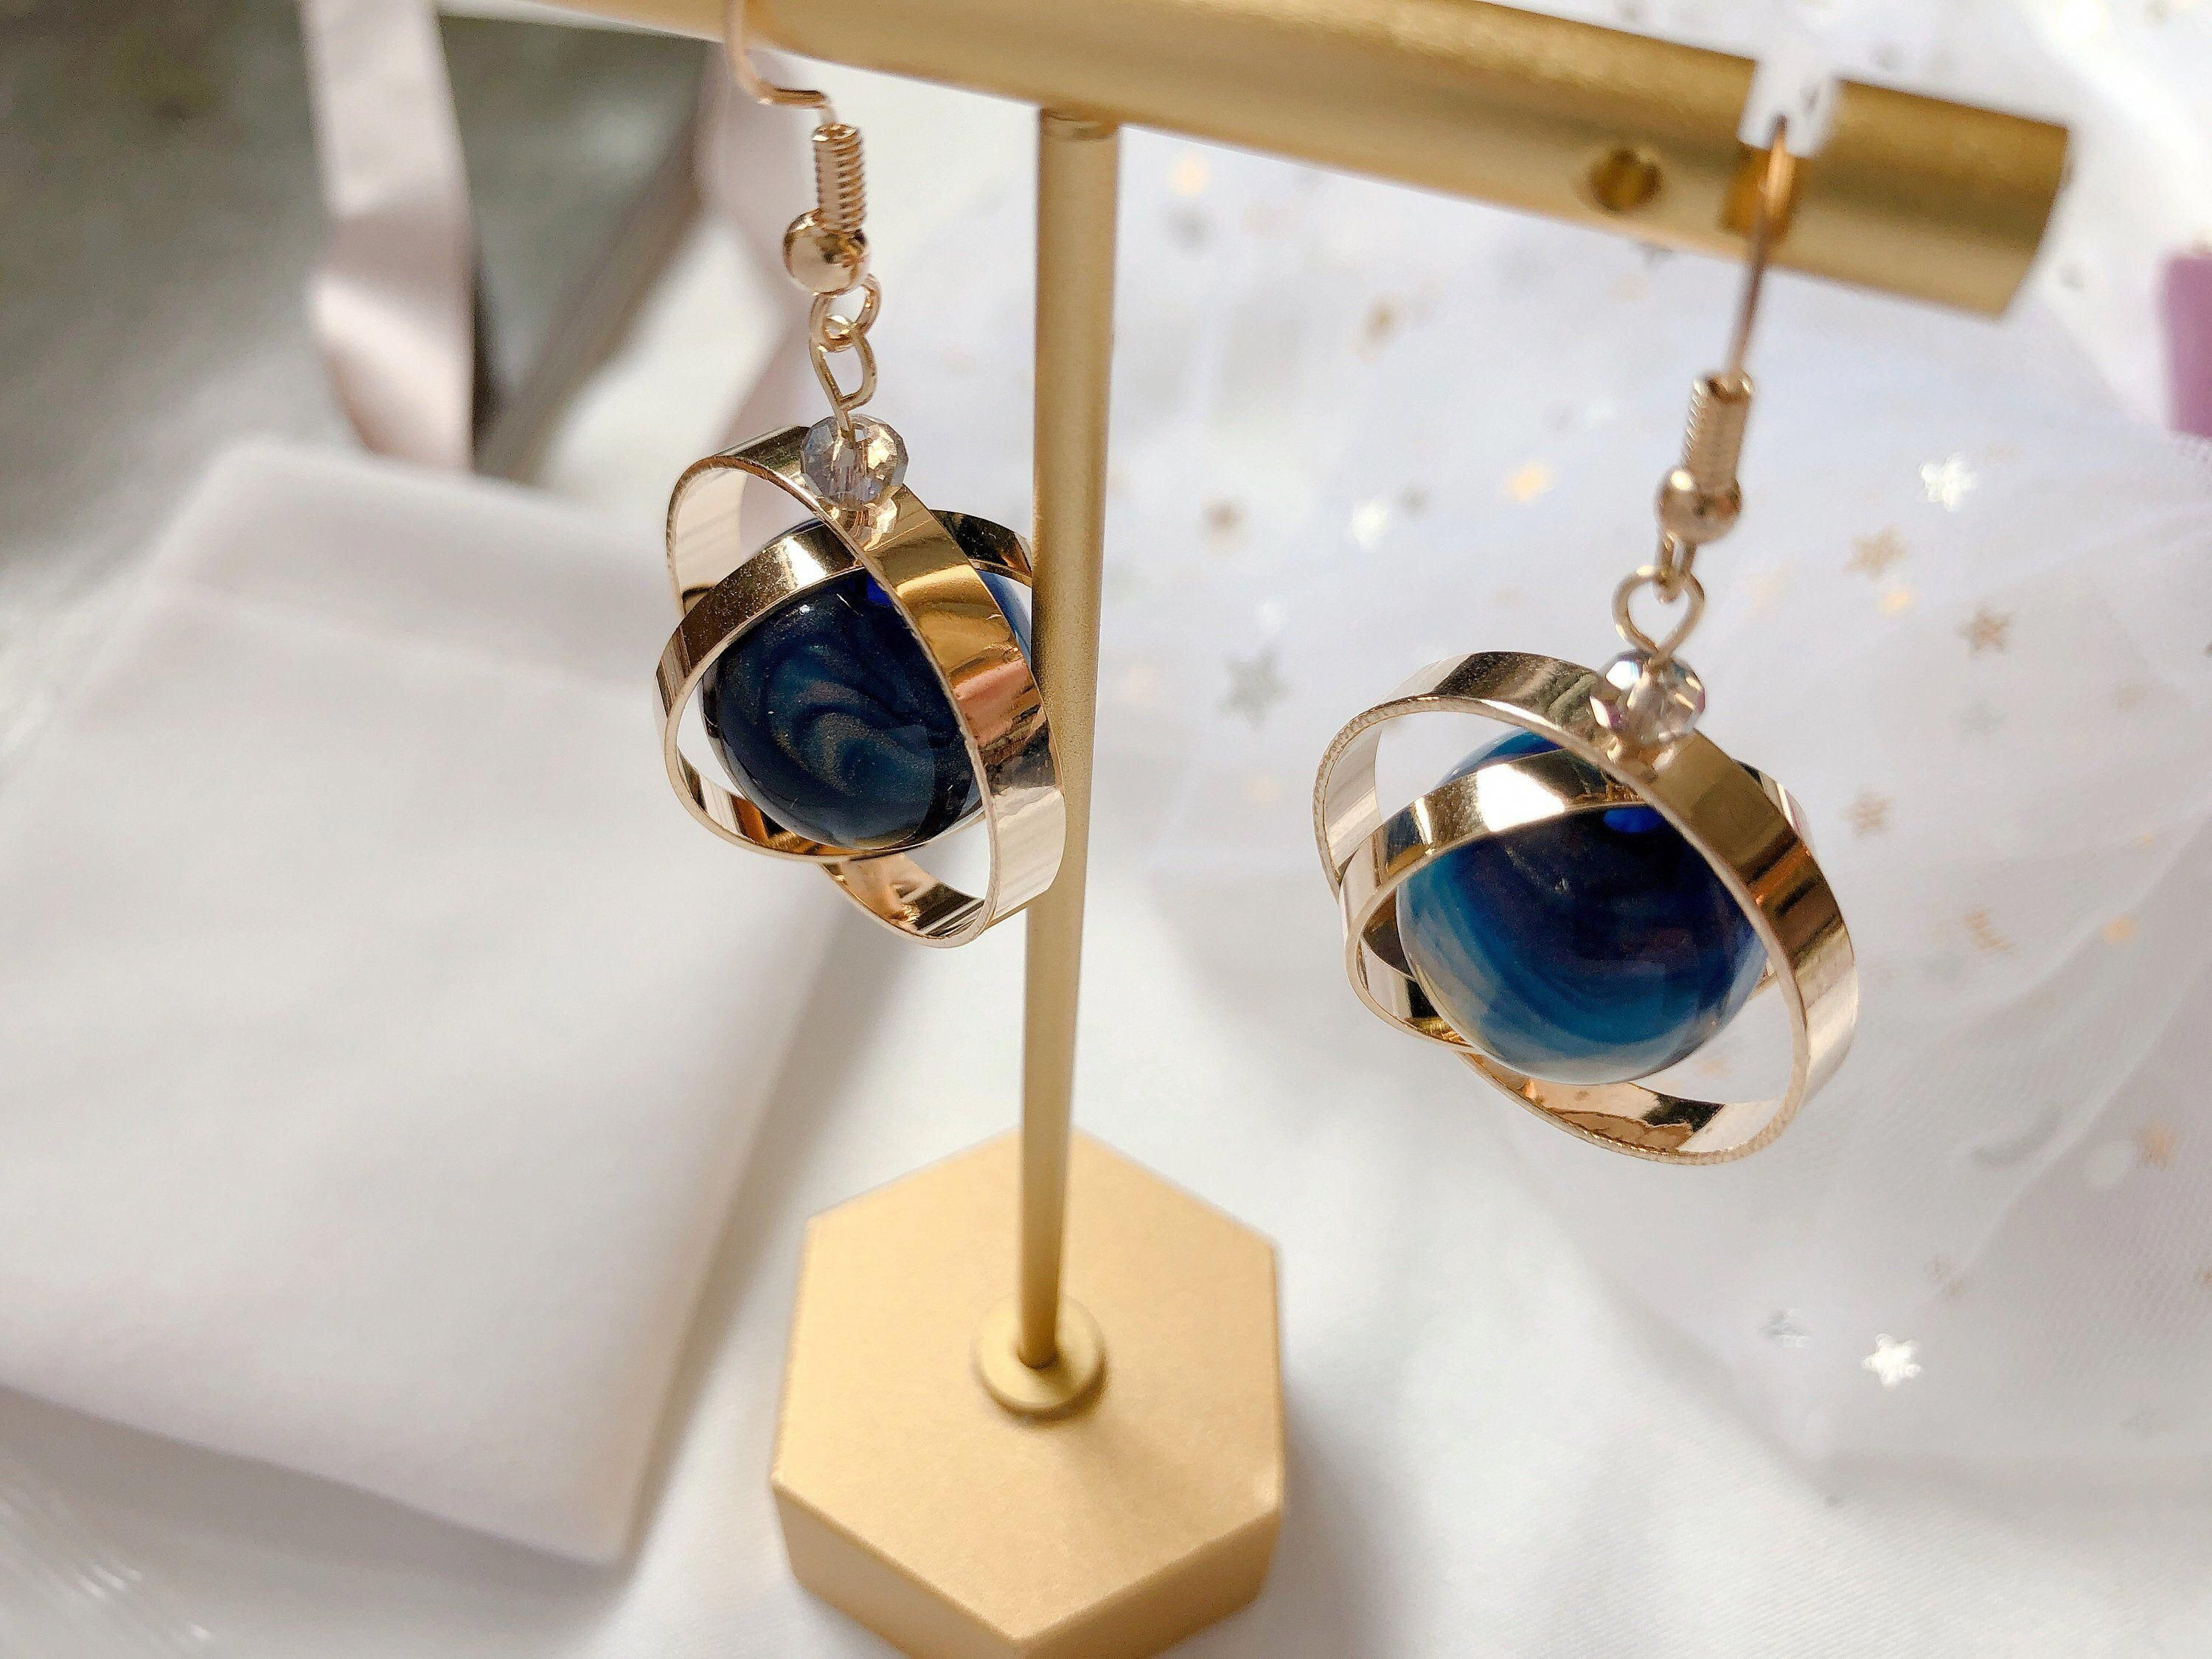 Astronomy earrings, spinner, space accessories, galaxy and universe, celestial jewelry, space accessories, gold drop earrings blue ball #circle #earrings #brass #partyearring #galaxy #astronomyjewelry